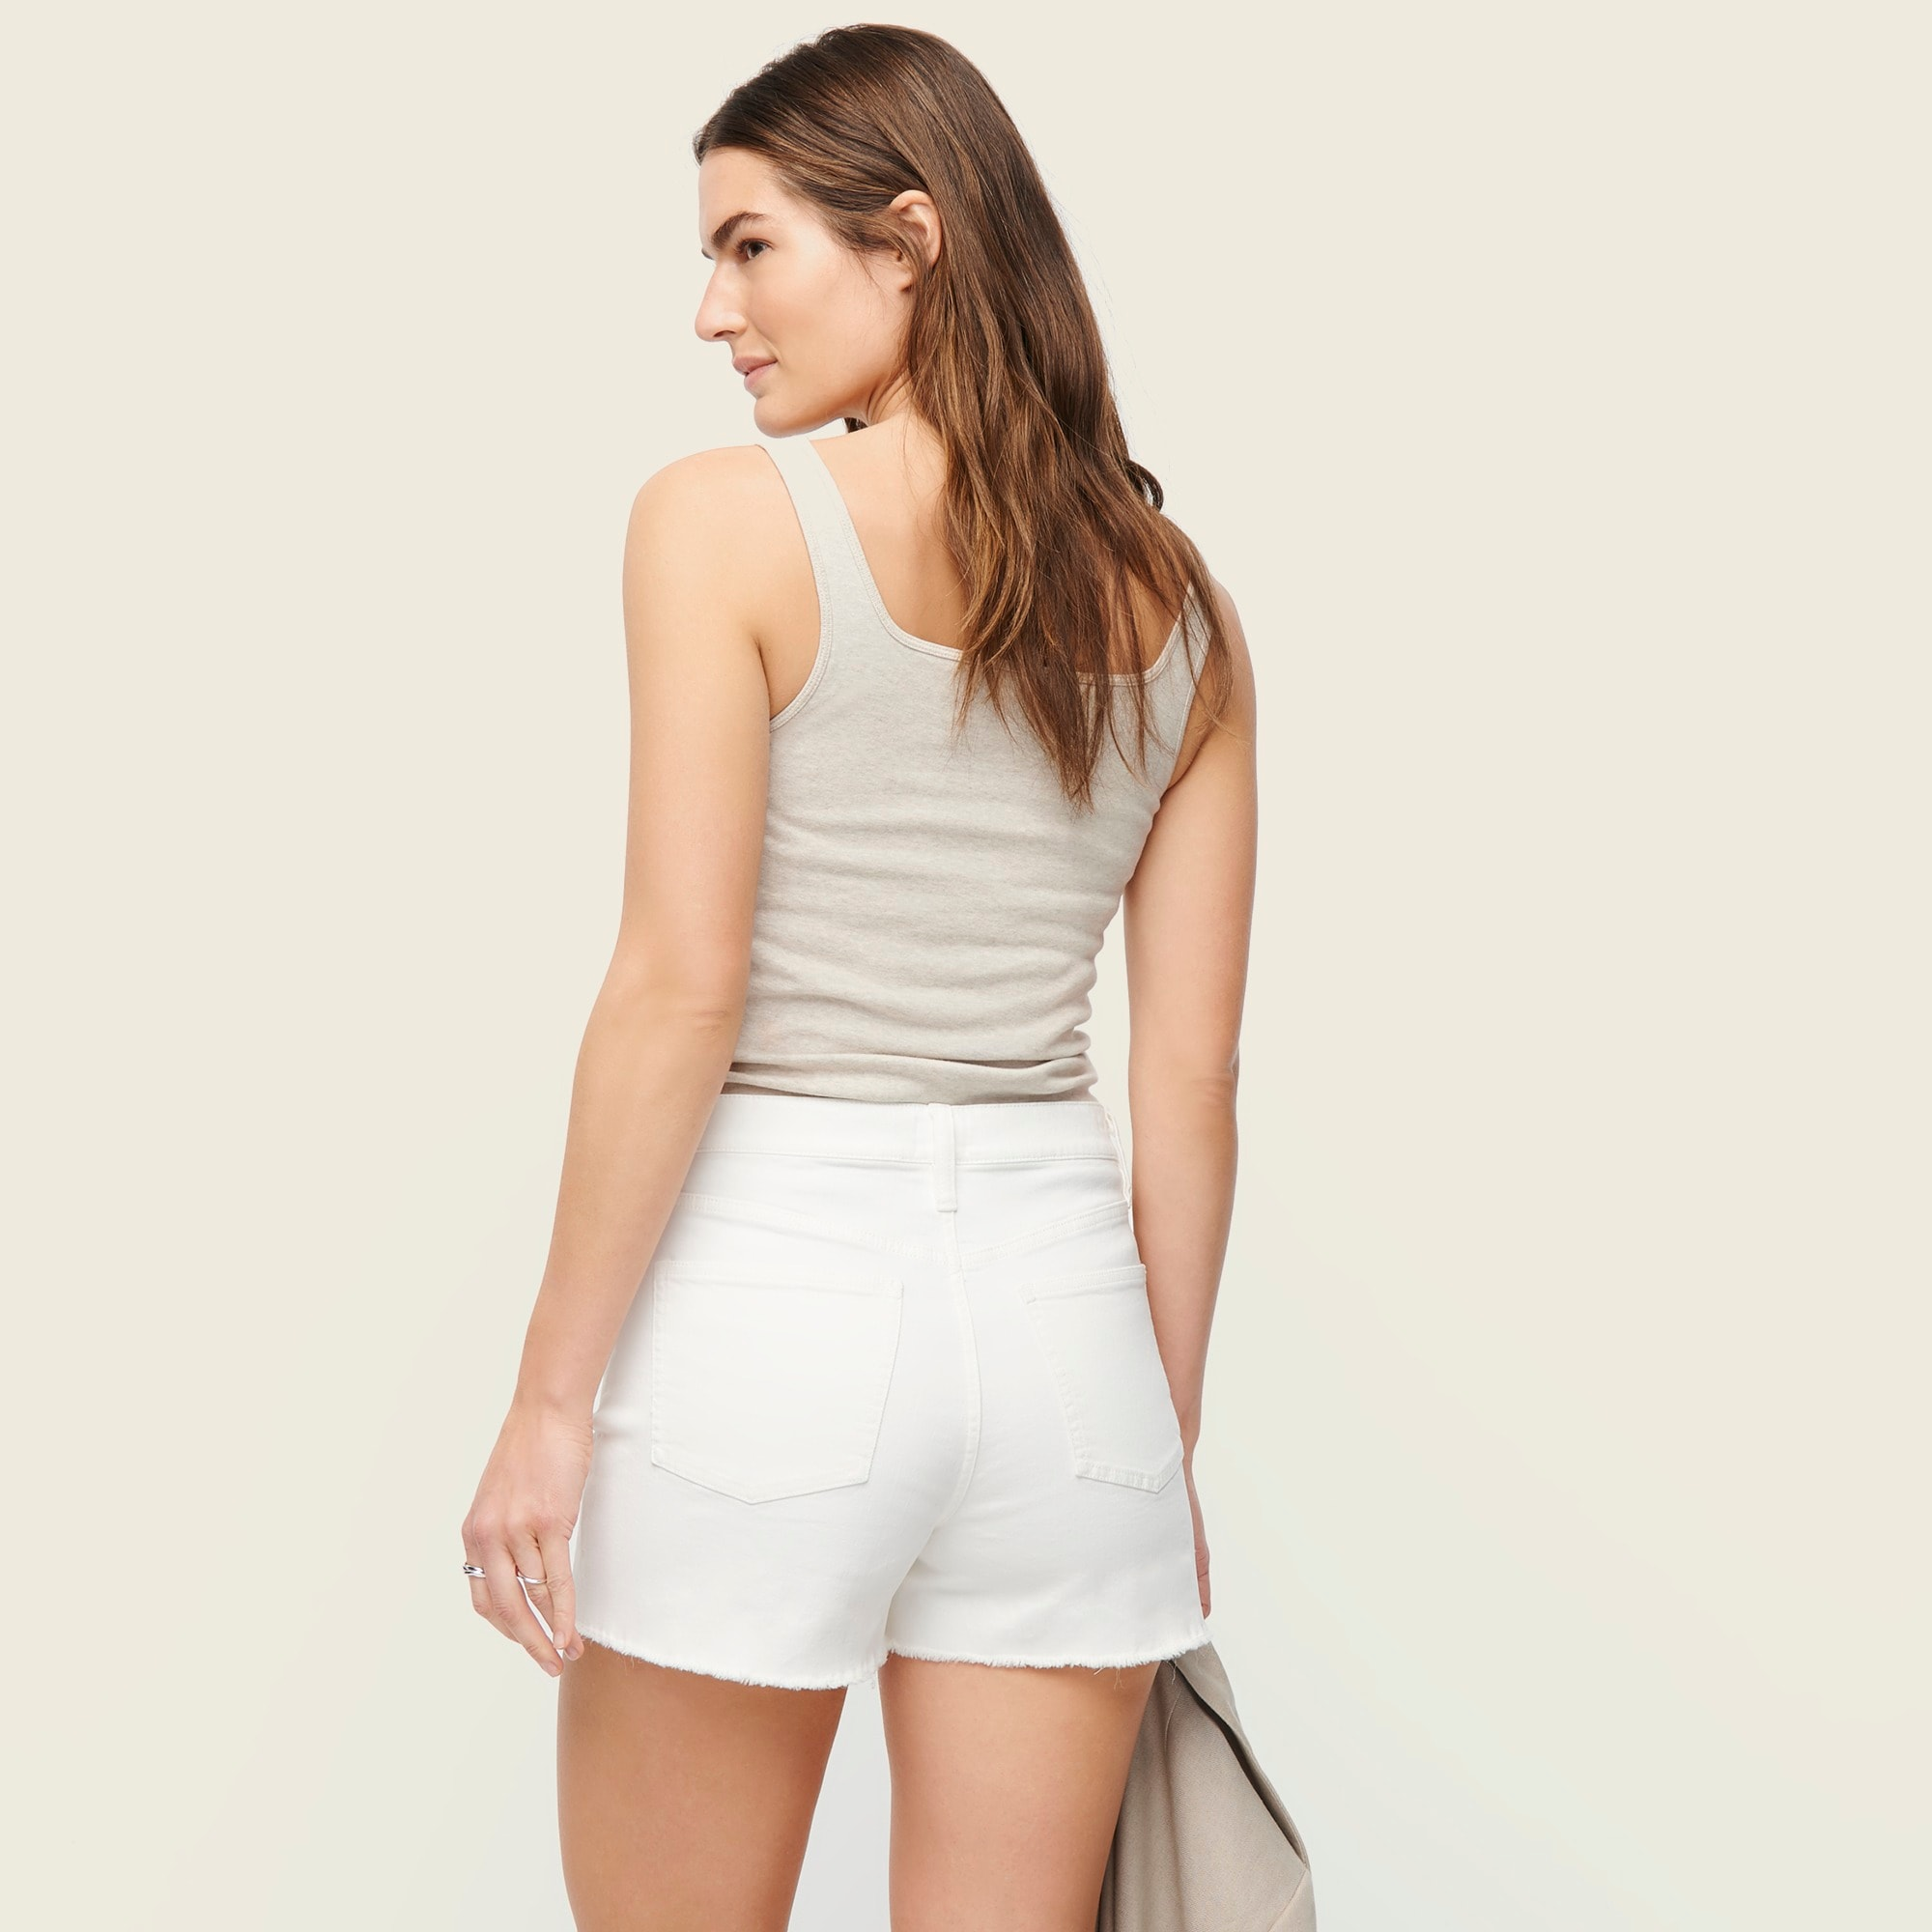 Image 3 for High-rise denim short in white with button fly